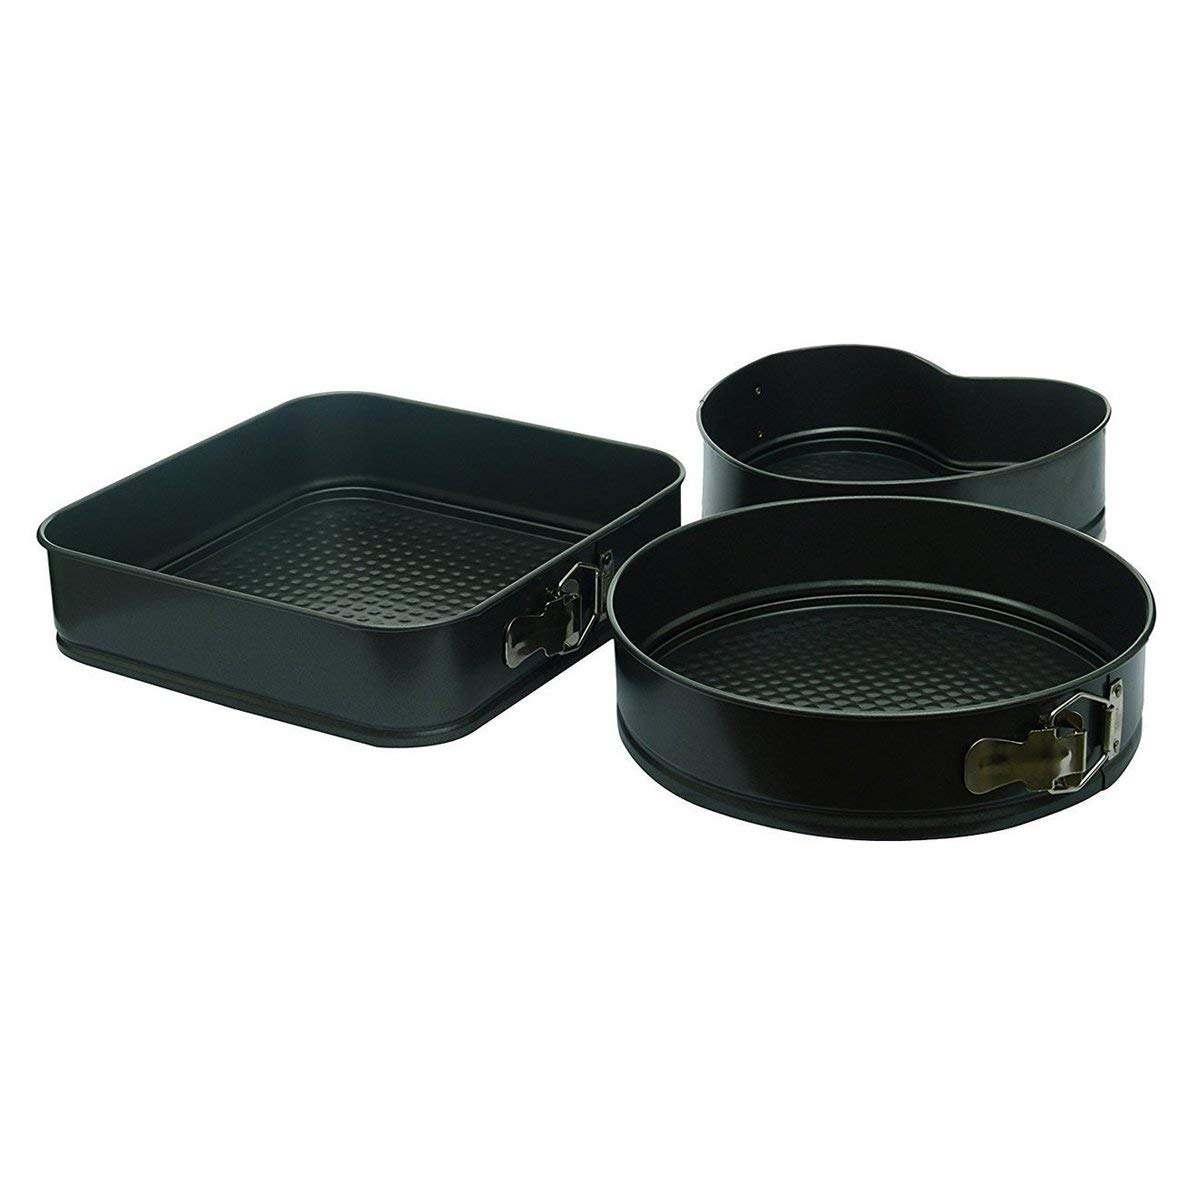 Cake Tin Set- Nonstick Coated Heart, Round and Square Shapes with Detachable Bottom